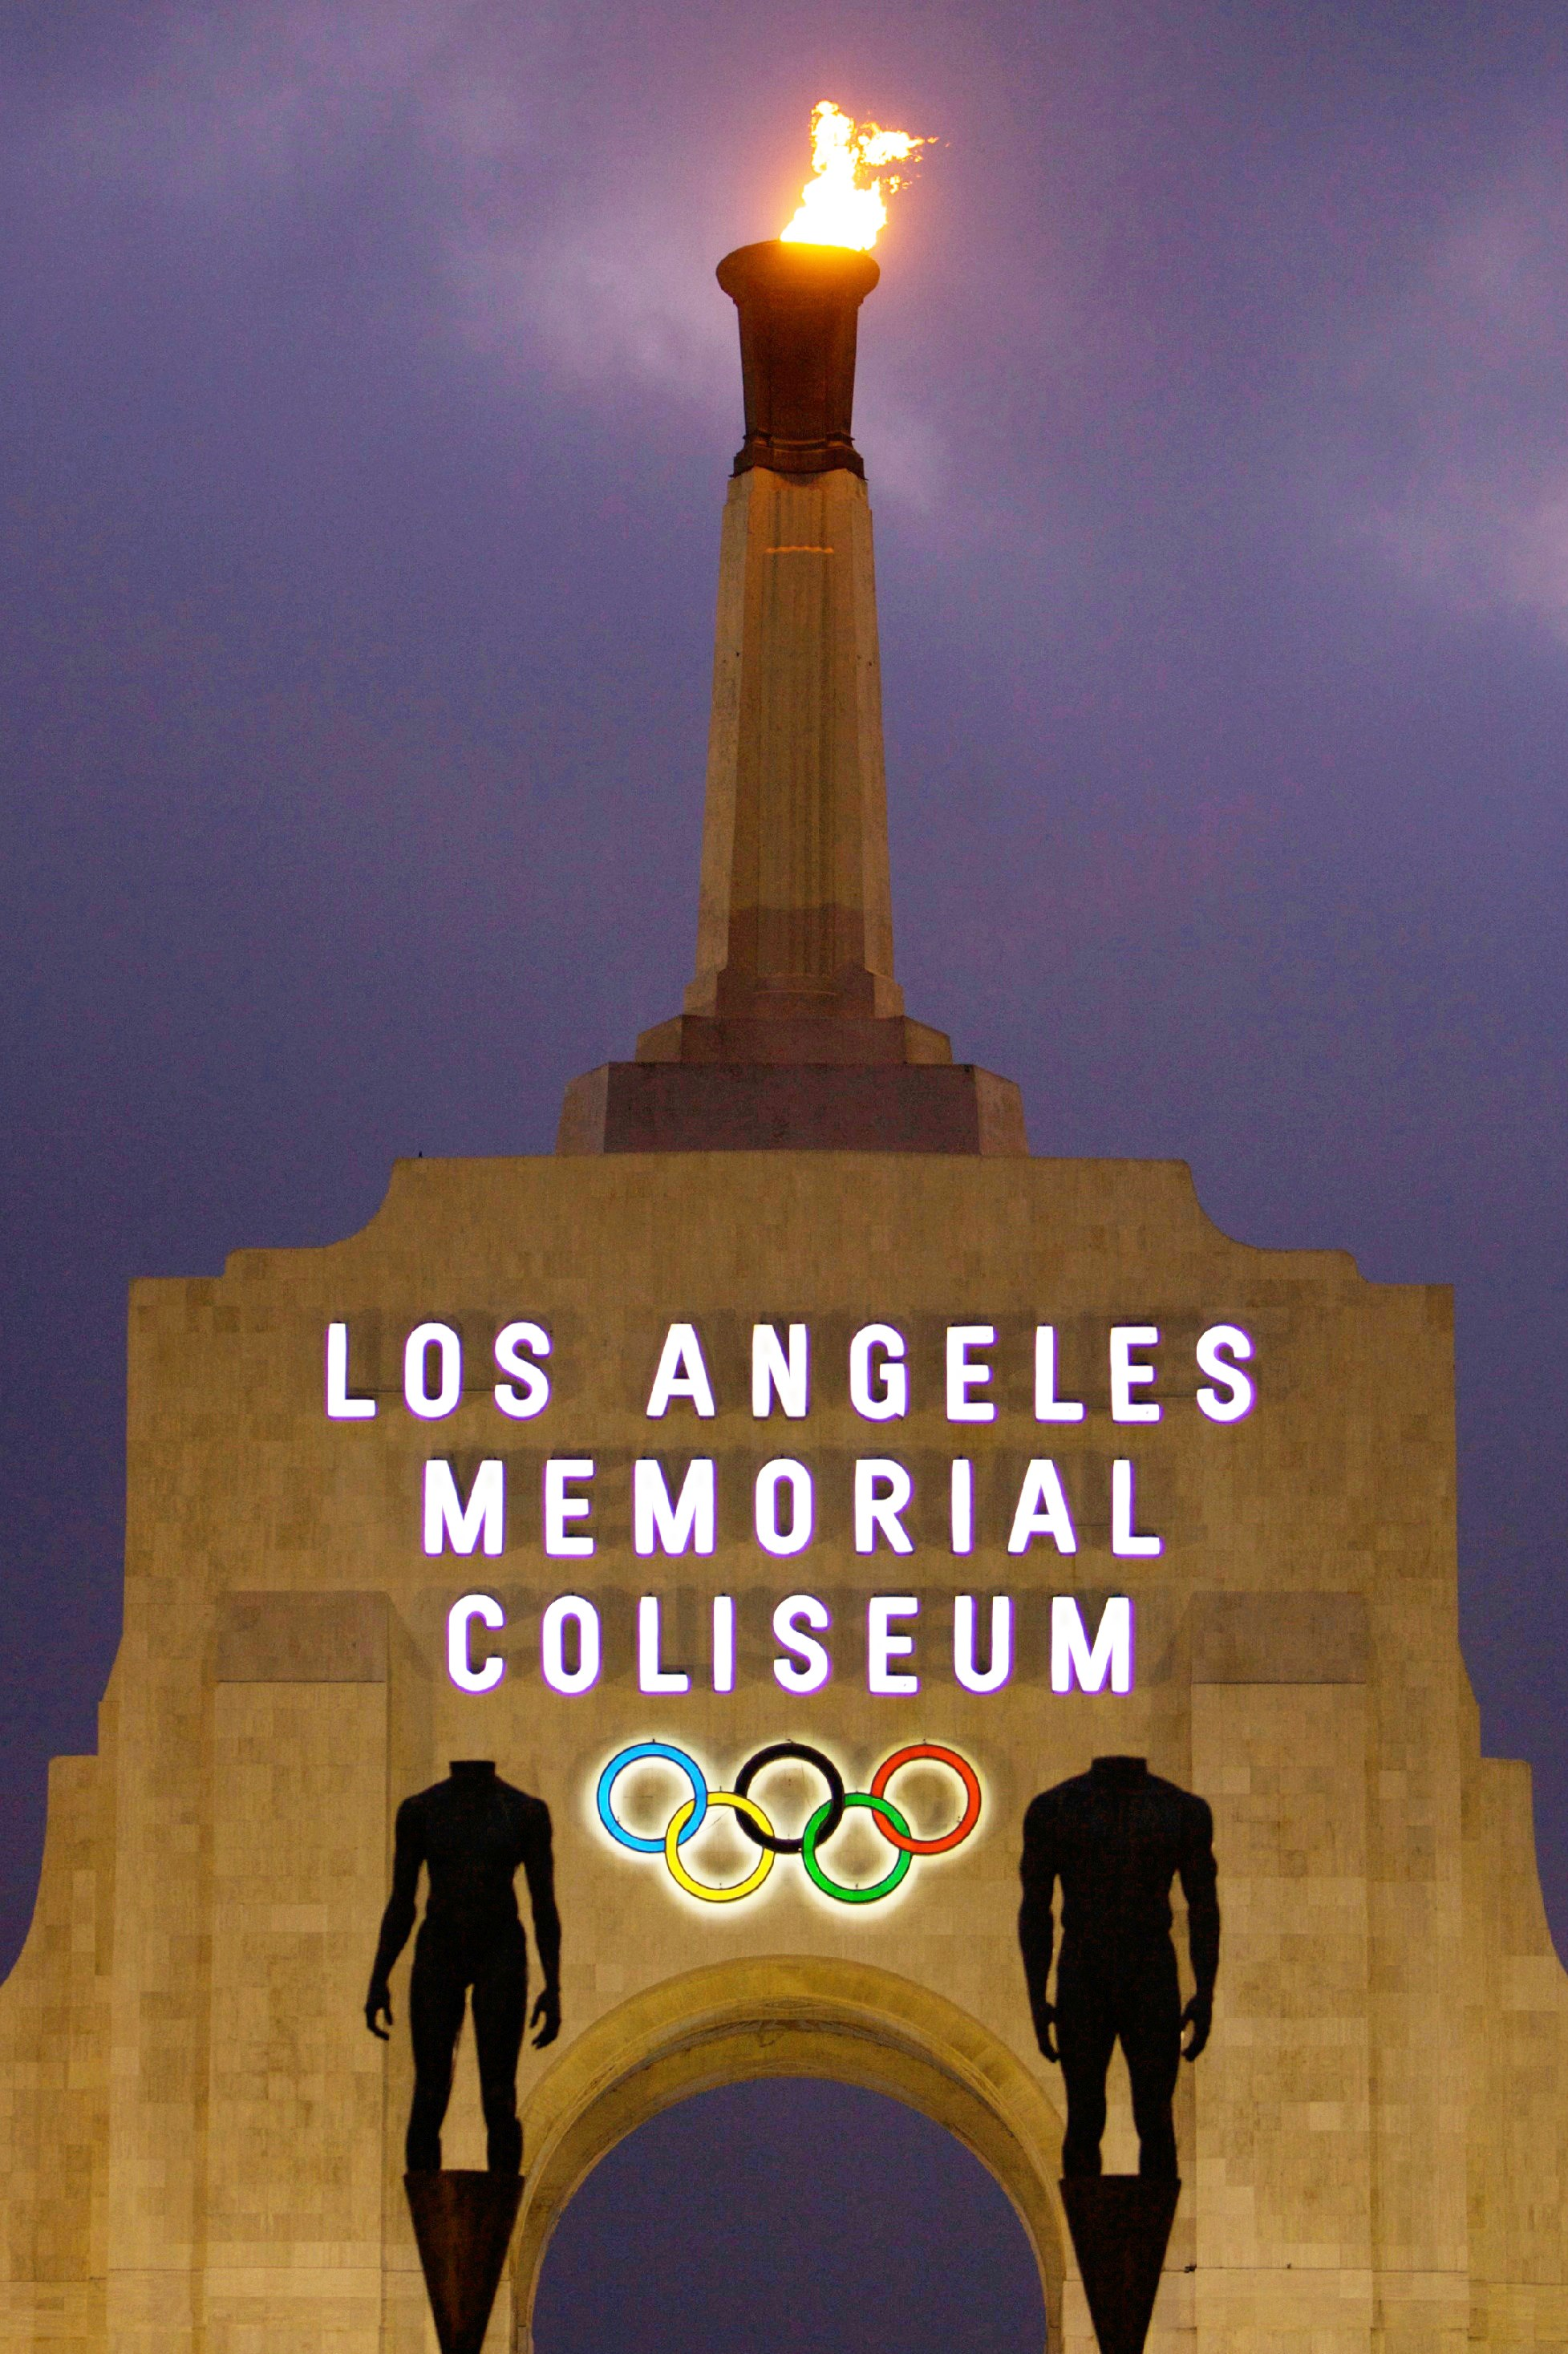 FILE - This Feb. 13, 2008, file photo shows the facade of The Los Angeles Memorial Coliseum in Los Angeles. The Los Angeles bid committee for the 2024 Olympics is projecting a $5.3 billion budget, a number that would be less than half the cost of the rece